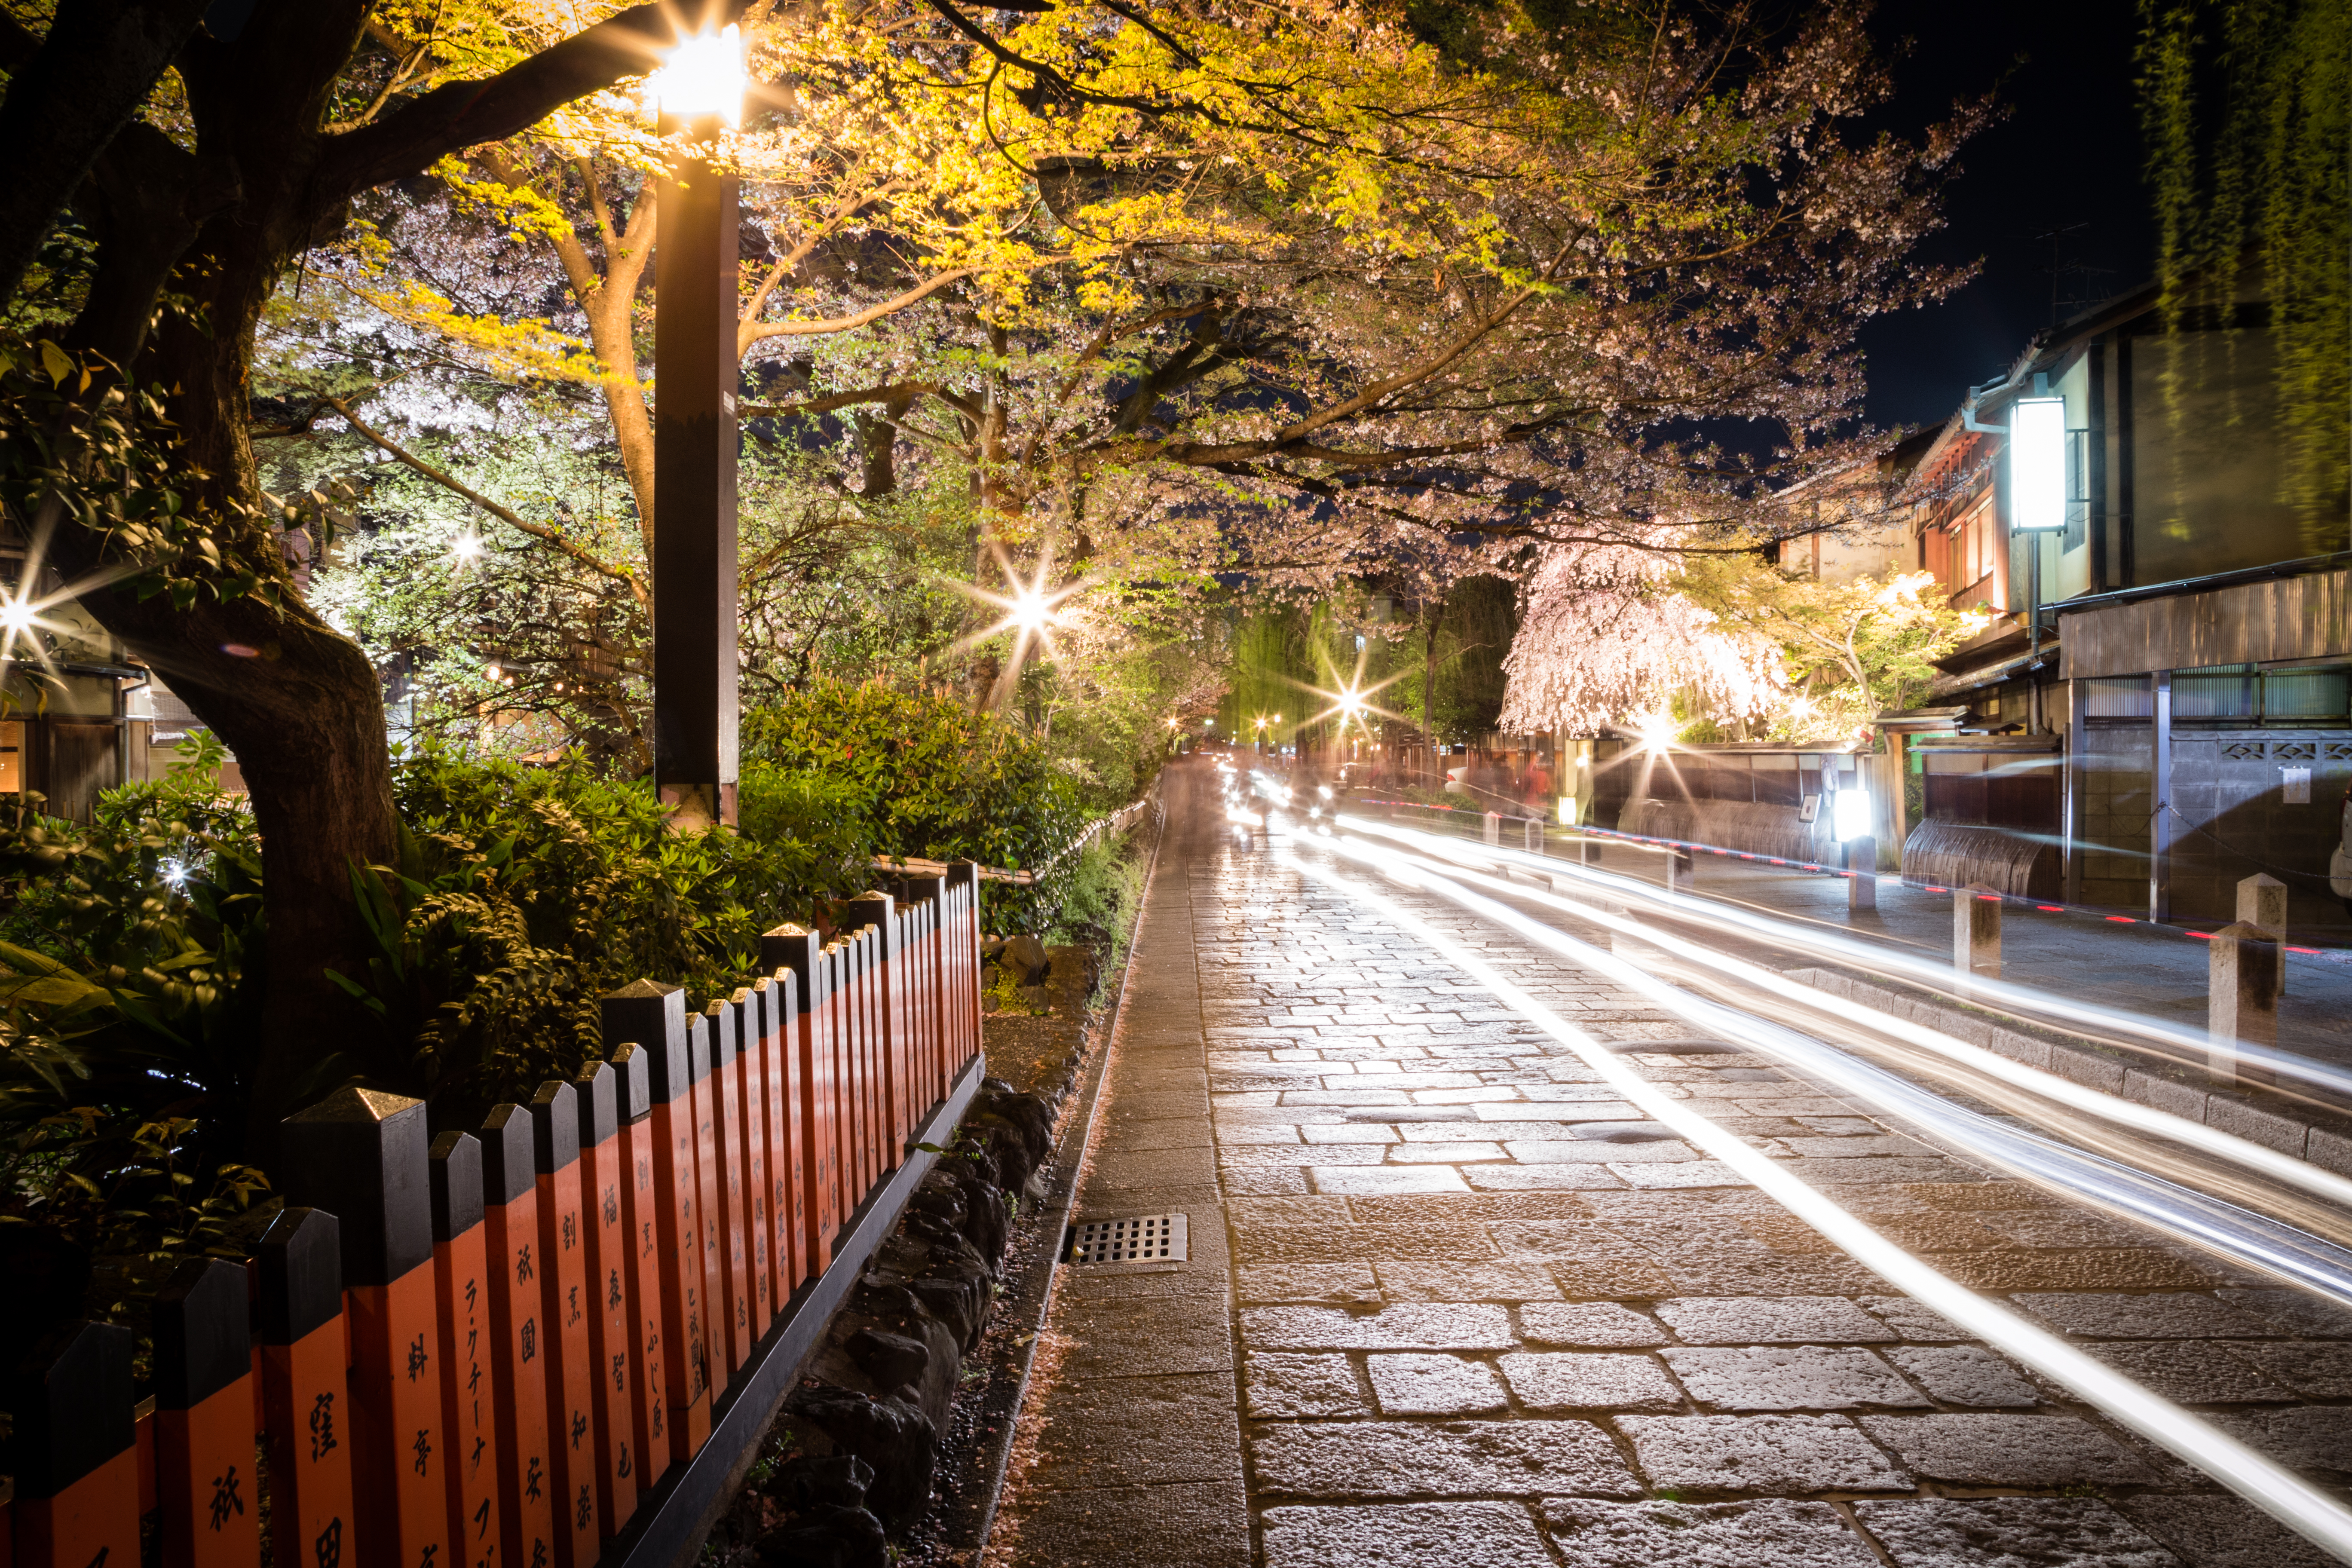 Gion Rush Hour, 6D, Kyoto, South East Asia, Outdoor, HQ Photo